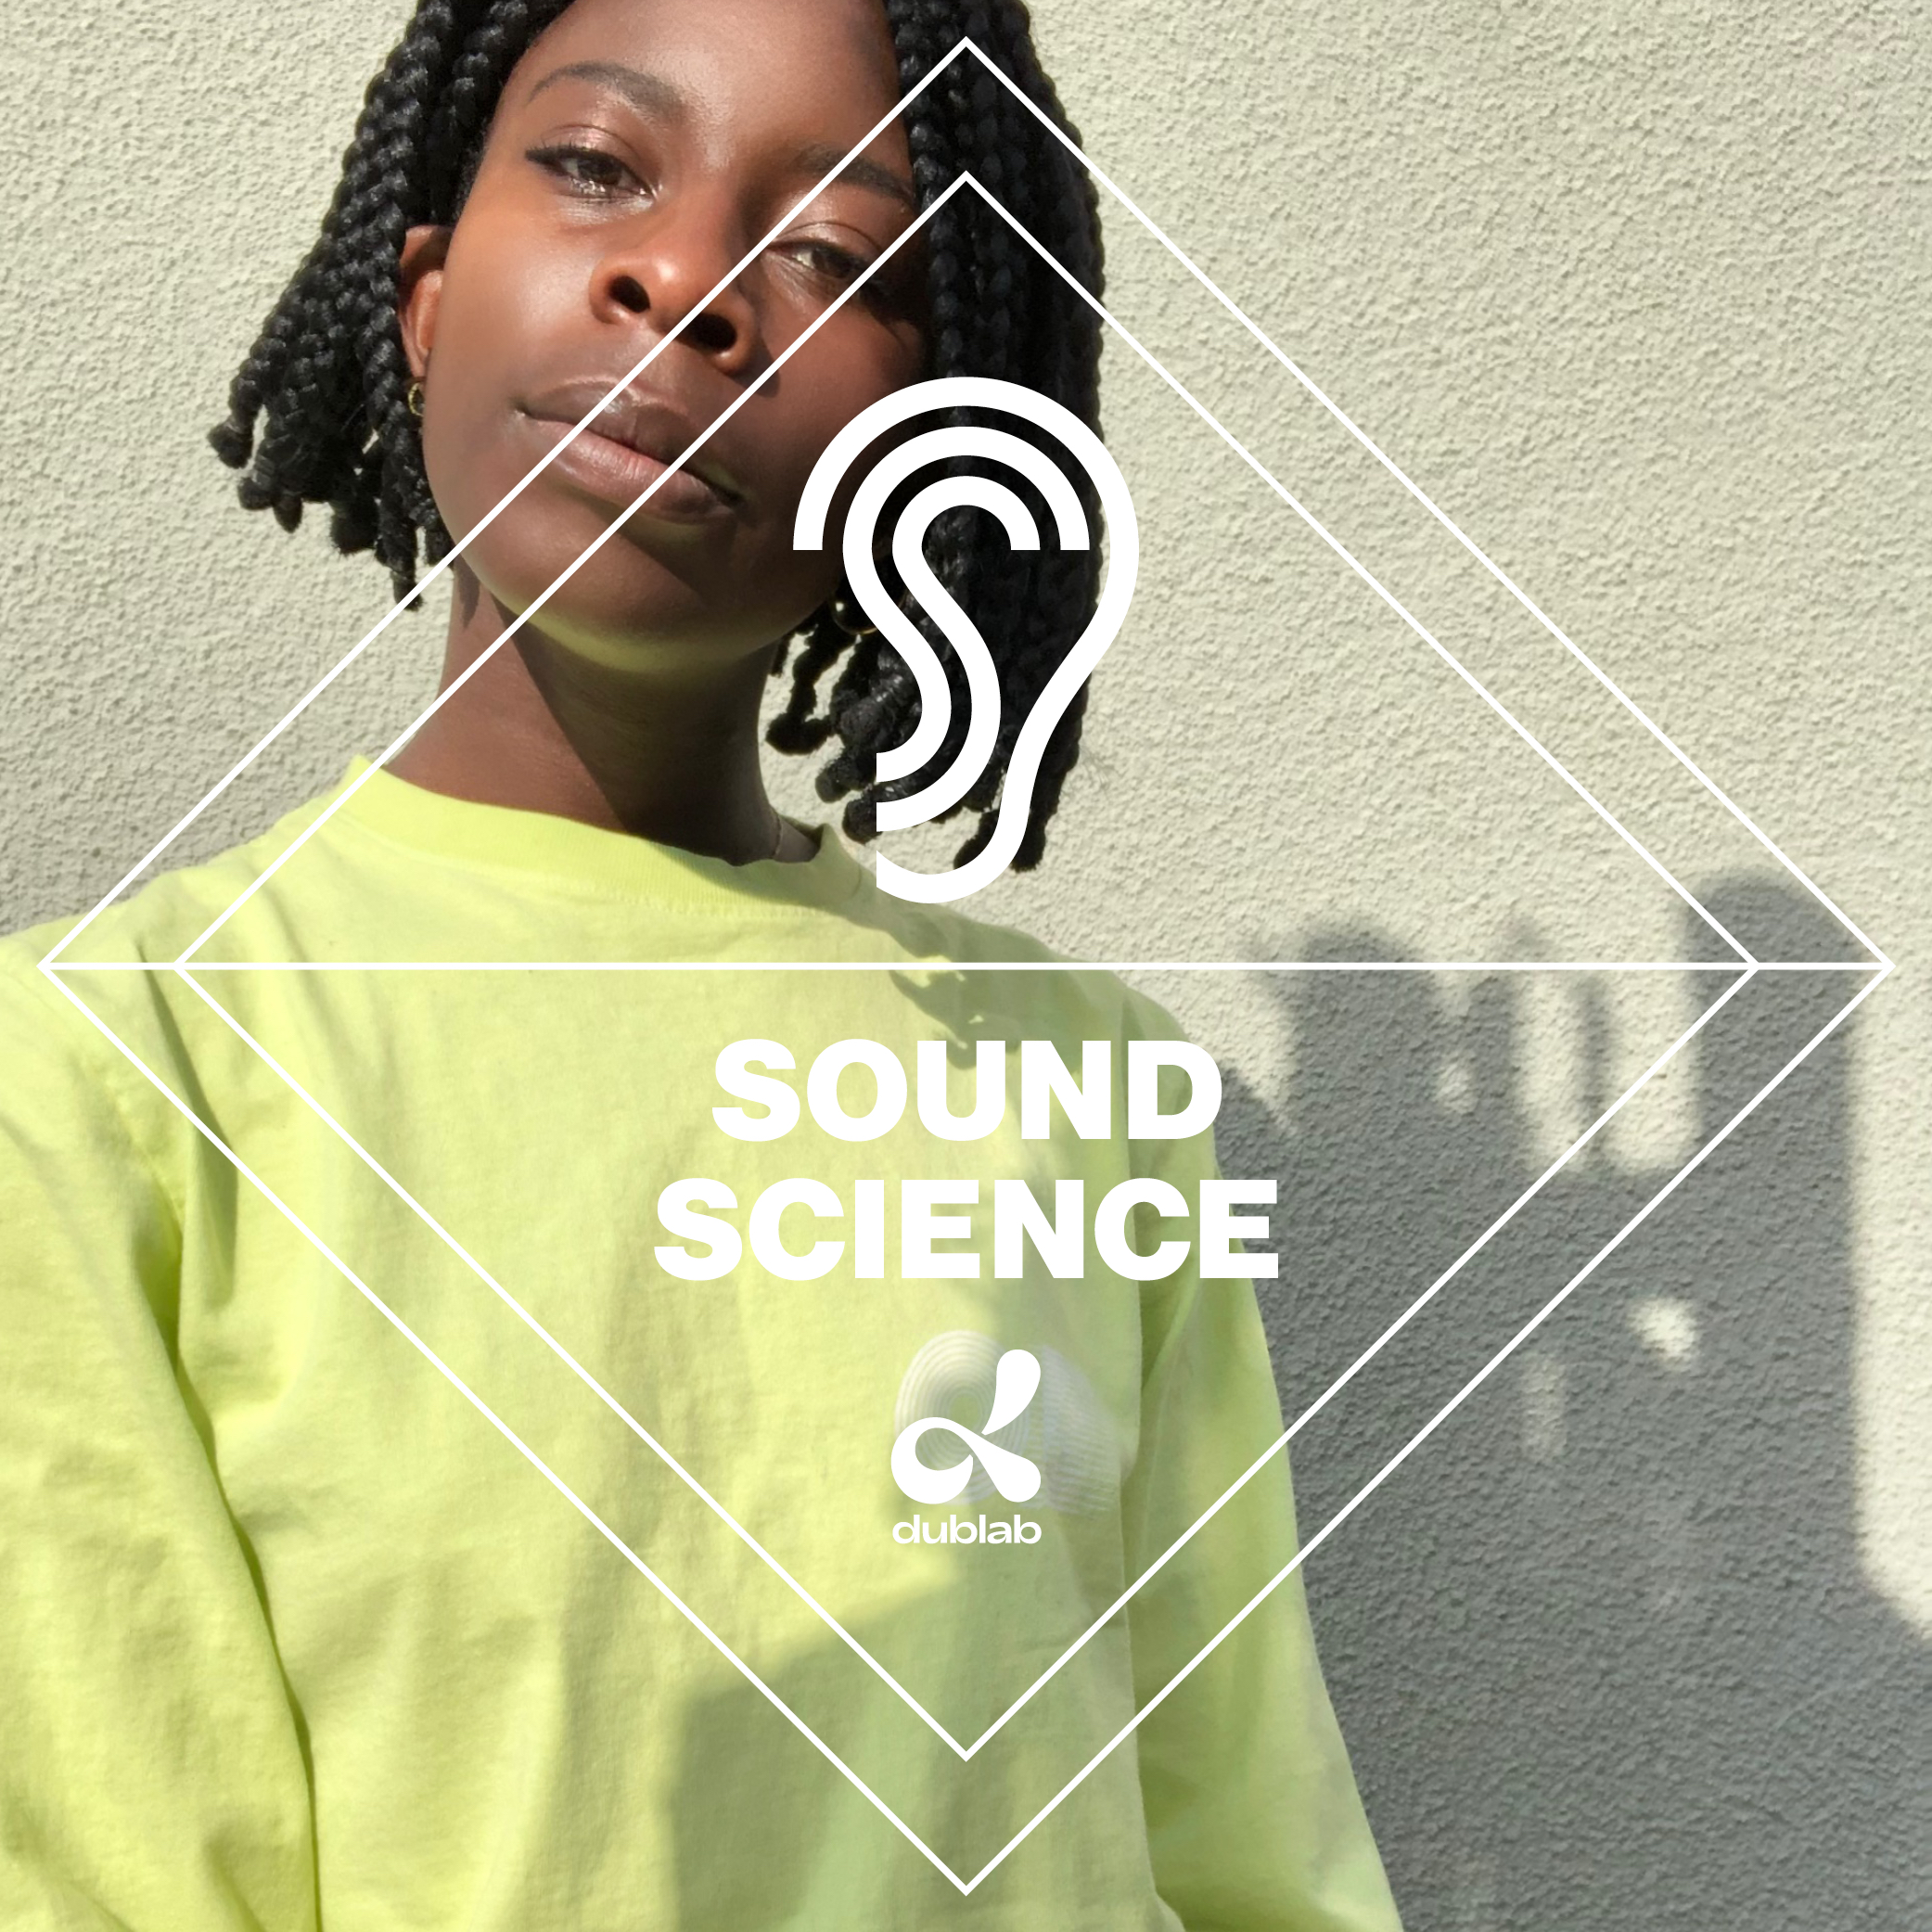 Sound science show image